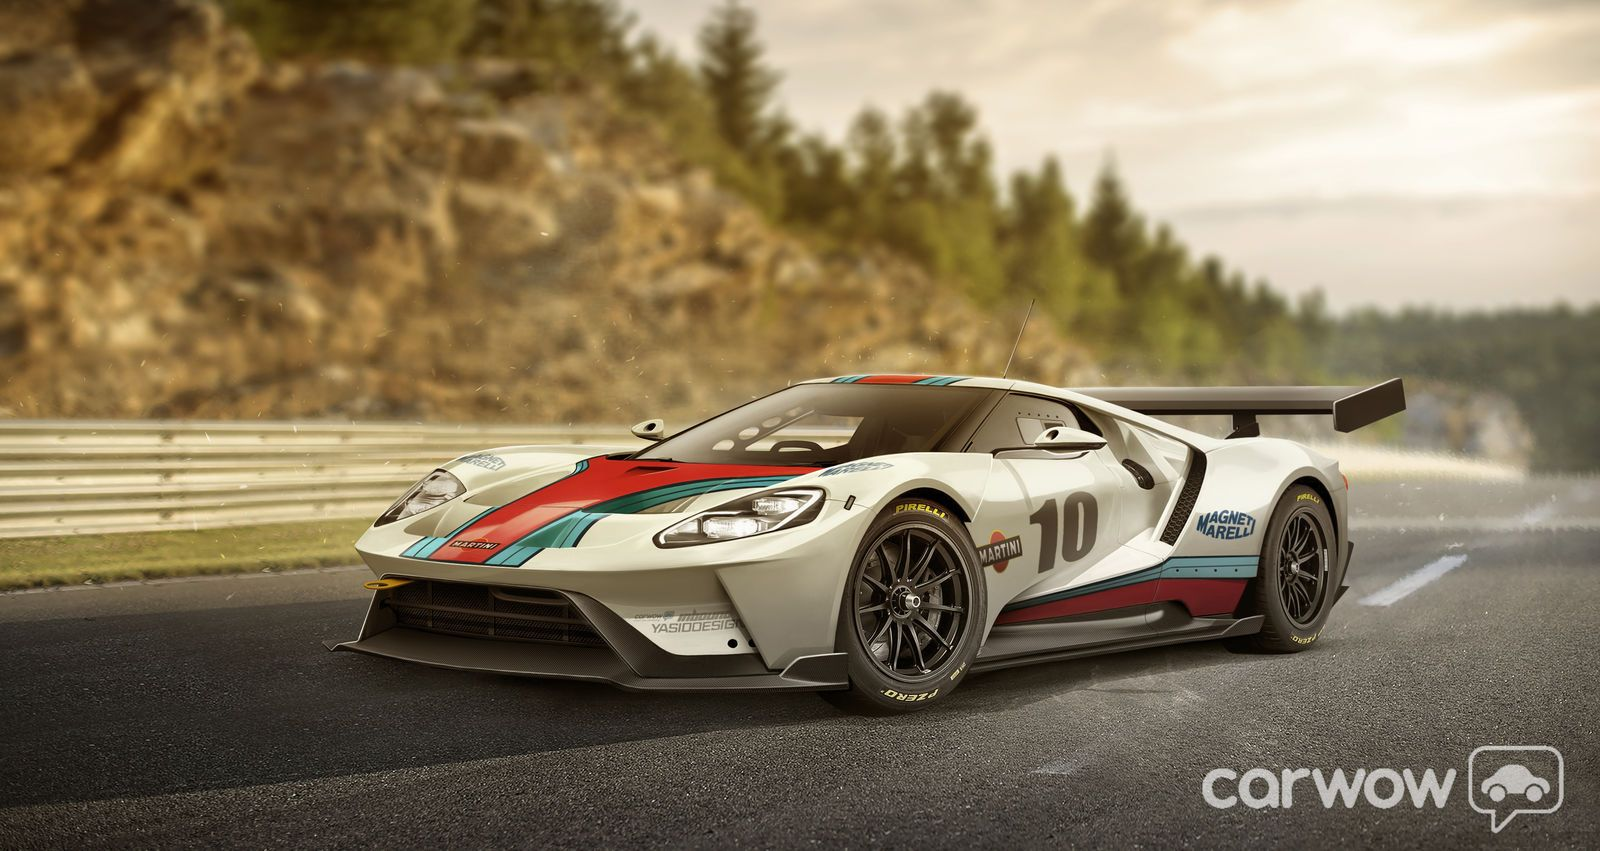 The New Ford Gt Has Been Revealed Leaving Gaping Jaws In Its Wake